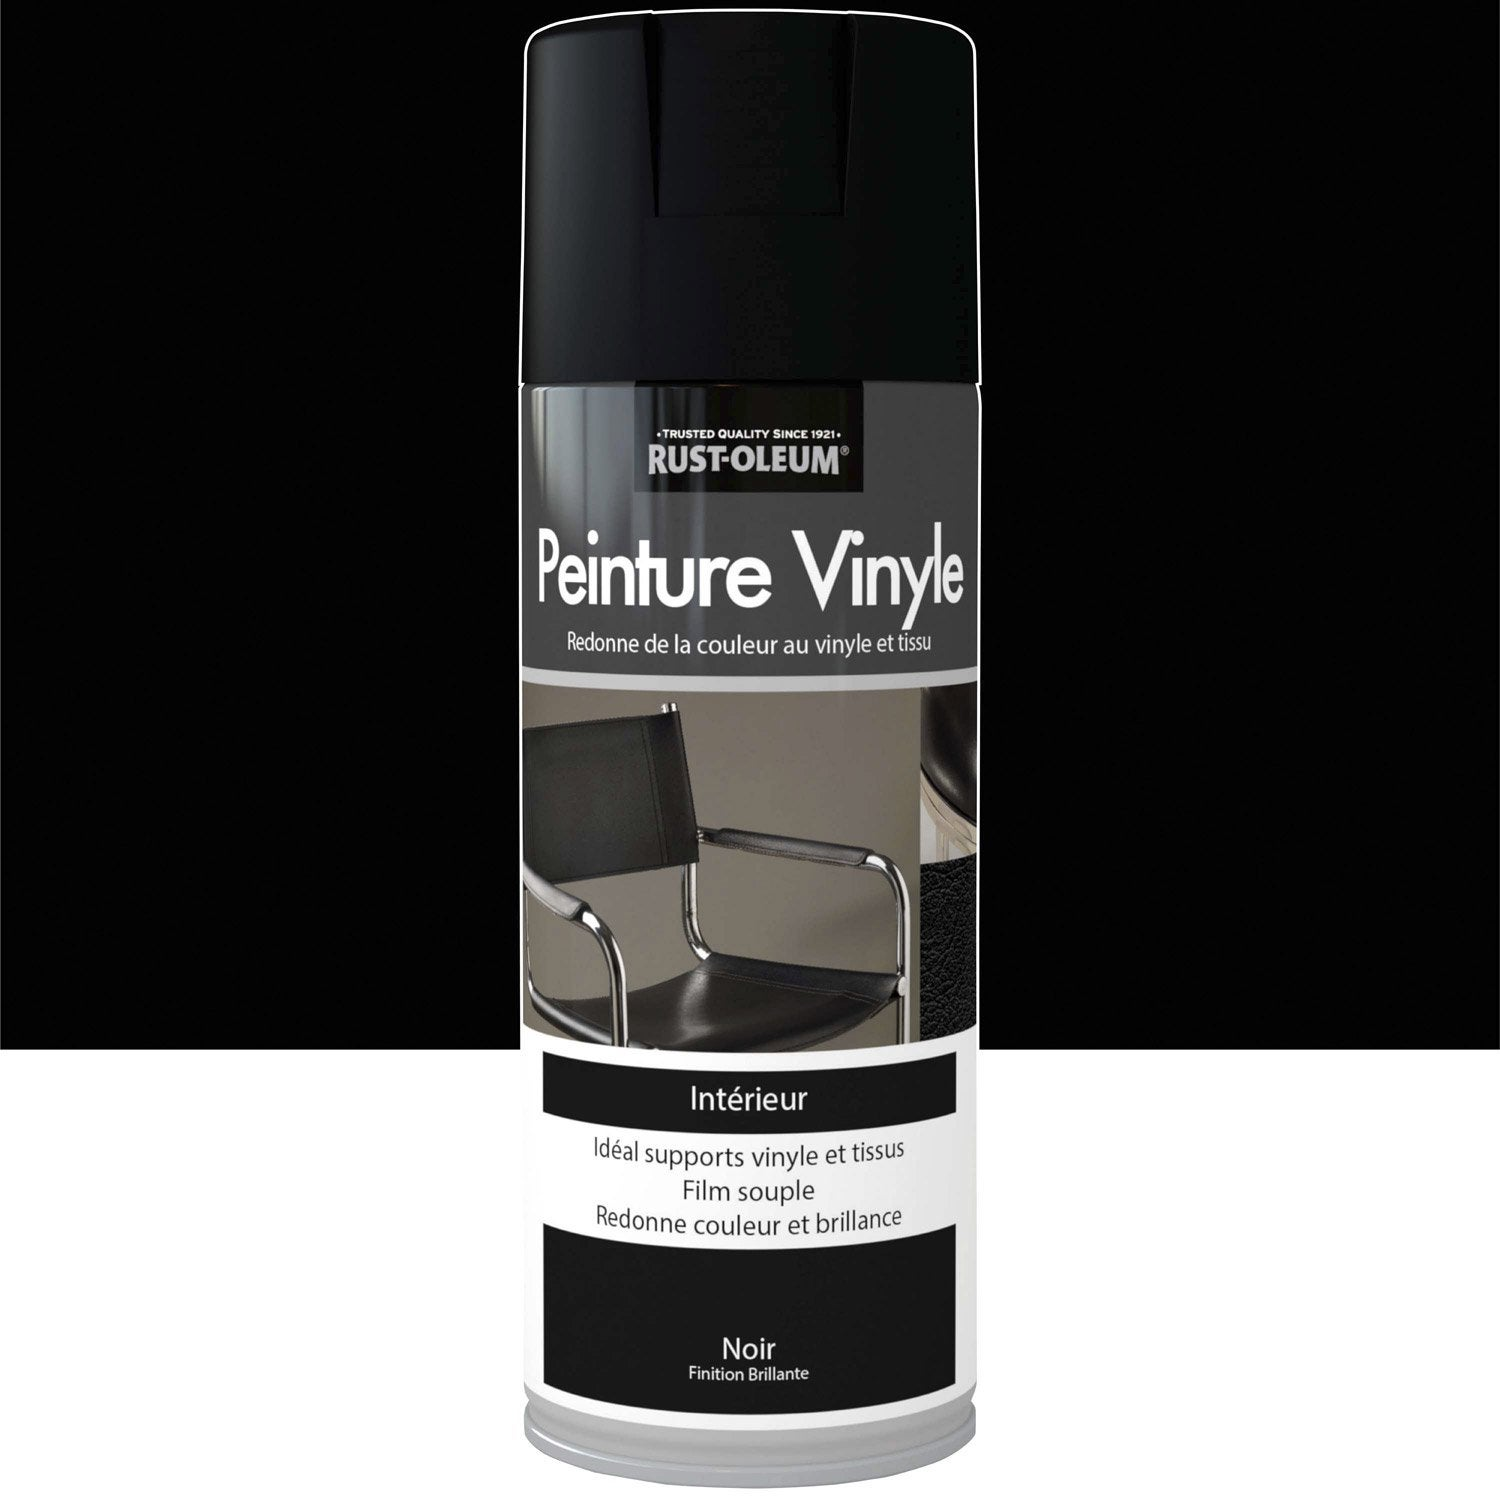 peinture a rosol vinyle brillant rustoleum noir 0 4 l leroy merlin. Black Bedroom Furniture Sets. Home Design Ideas